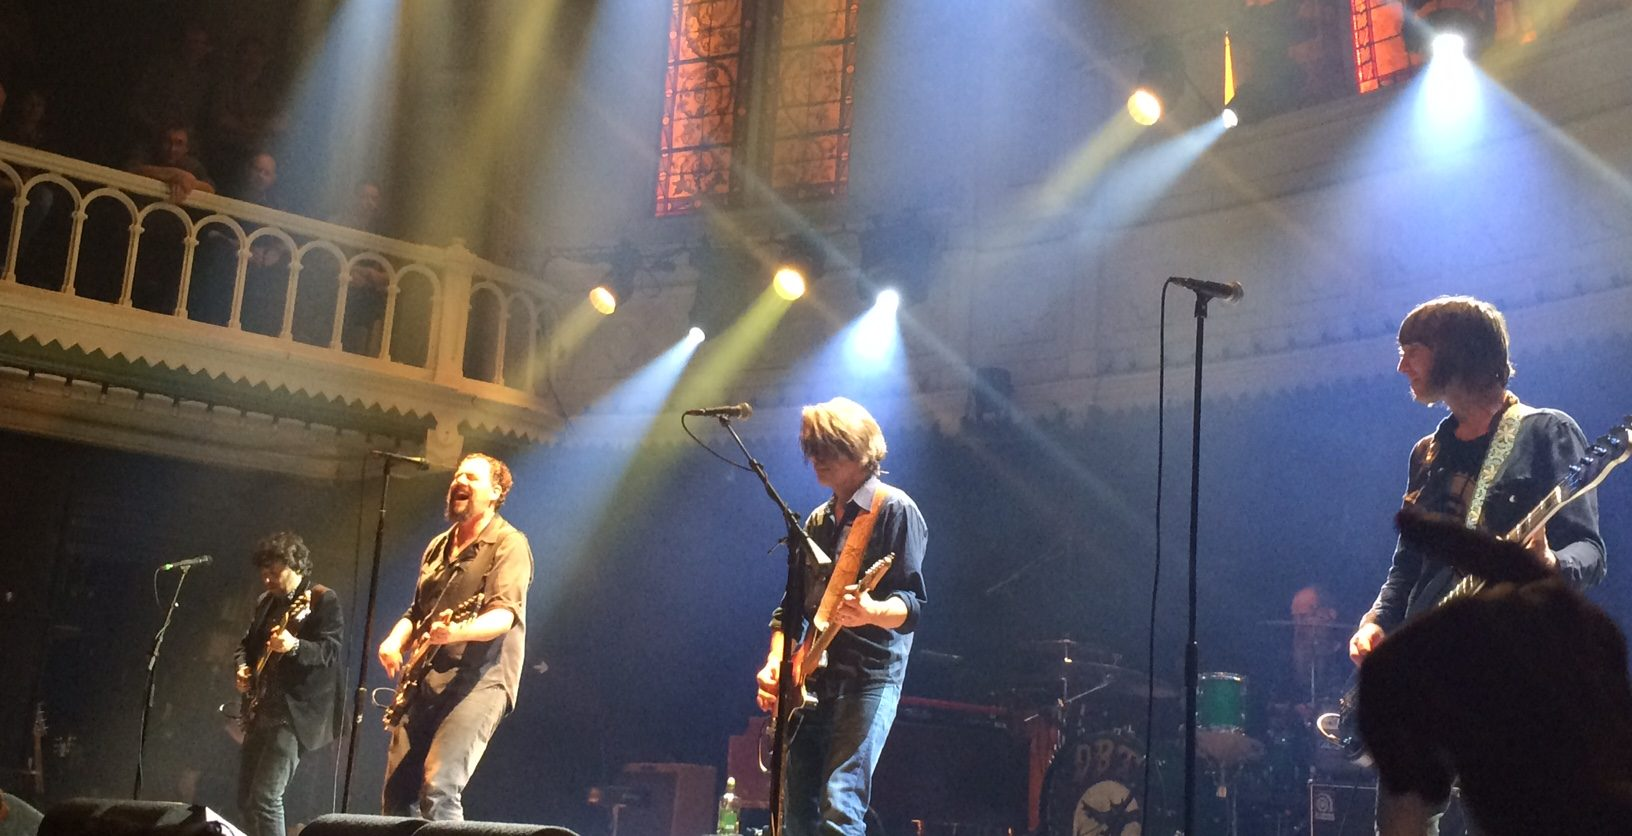 Concertreview: Drive-By Truckers: 'We'll play 'till the f*cking curfew' – Patterson Hood